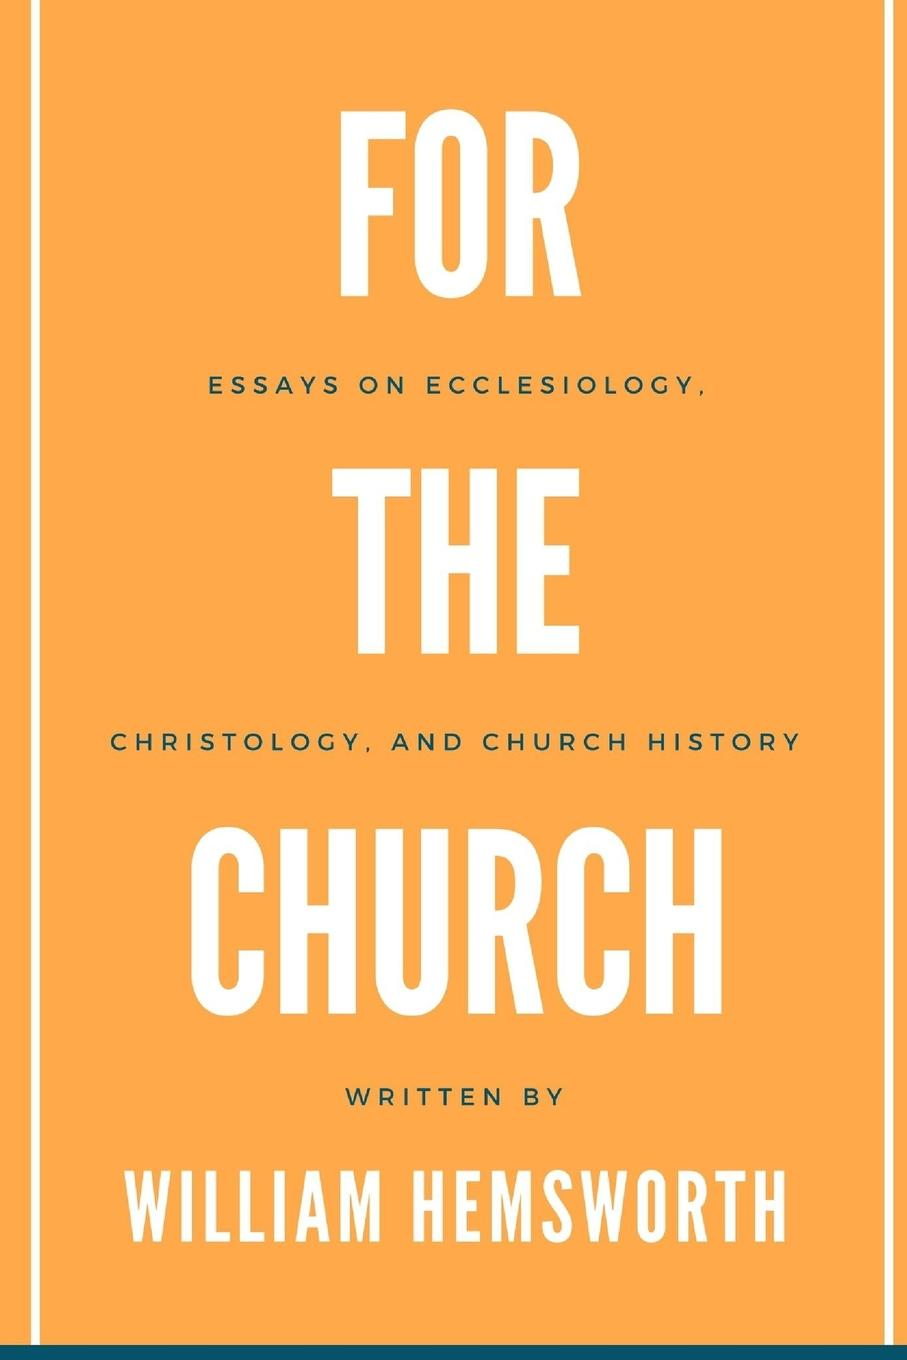 William Hemsworth For The Church. Essays on Ecclesiology, Christology, and Church History women can be priests in the catholic church a hermeneutical study